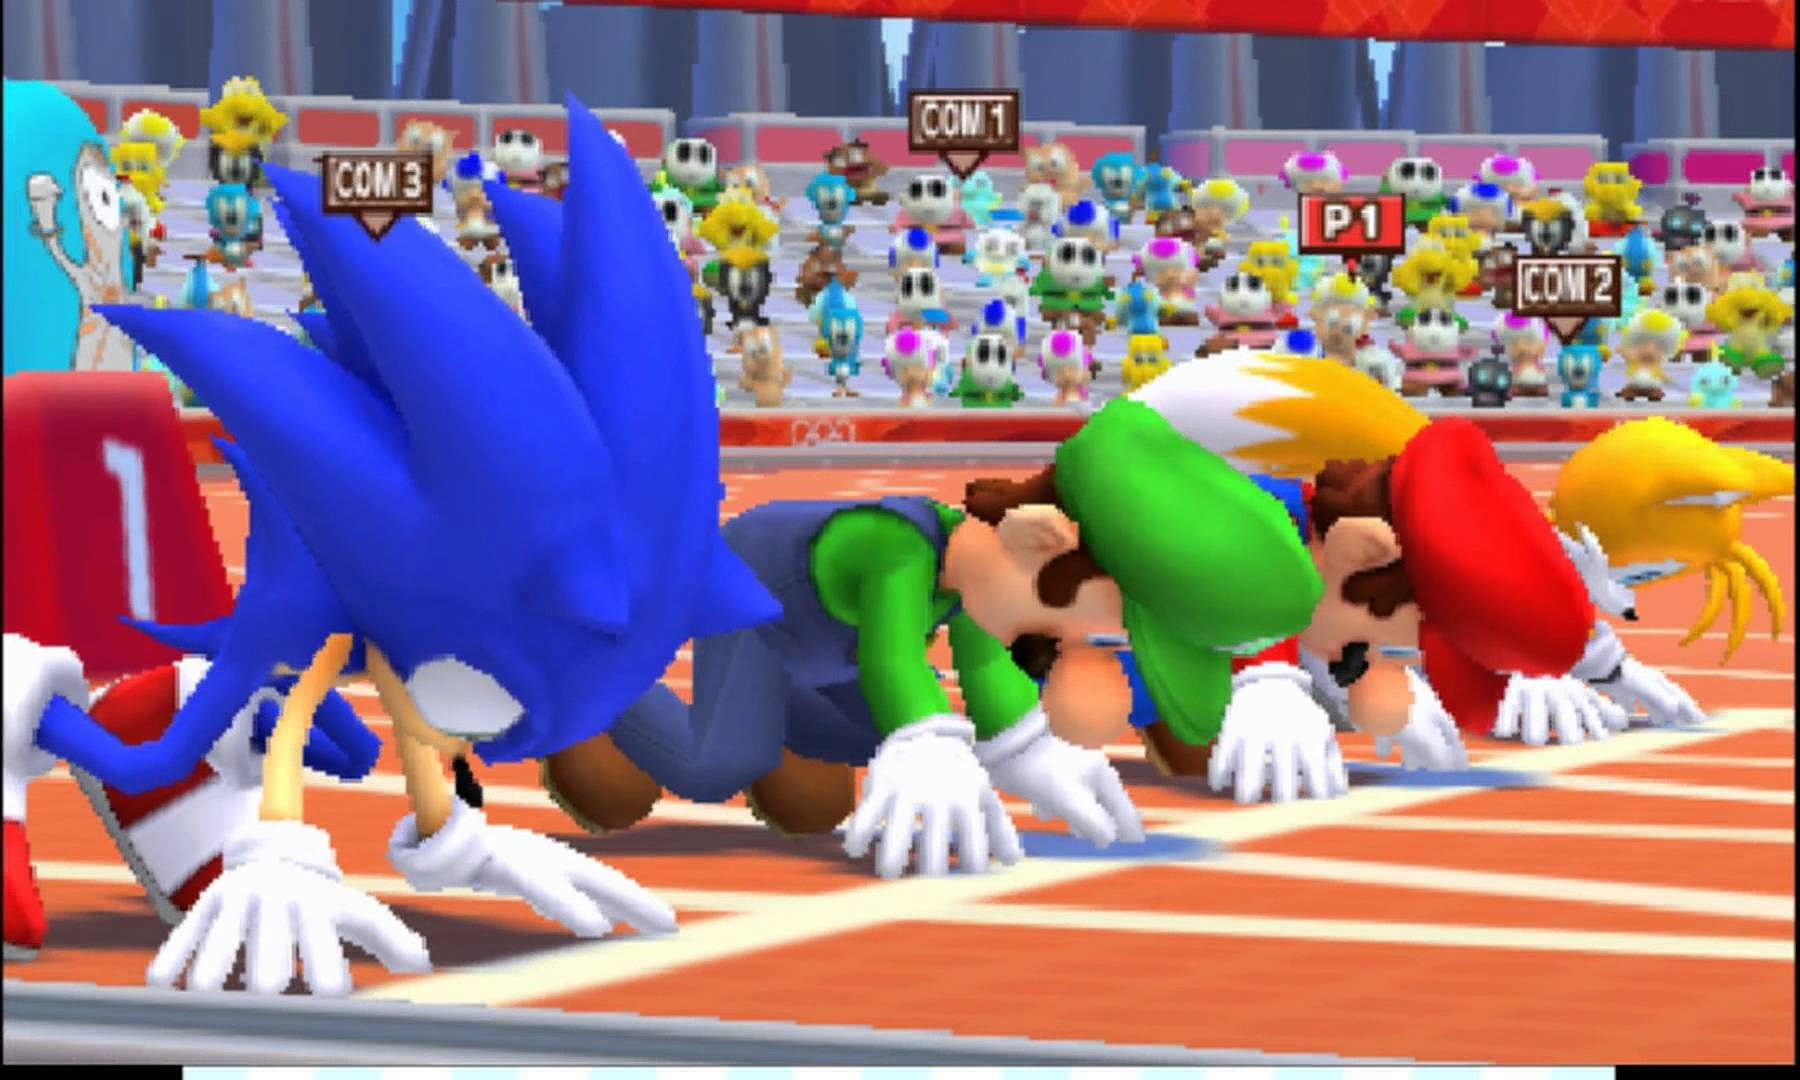 Nintendo Wii Mario & Sonic at the Olympic Games London 2012